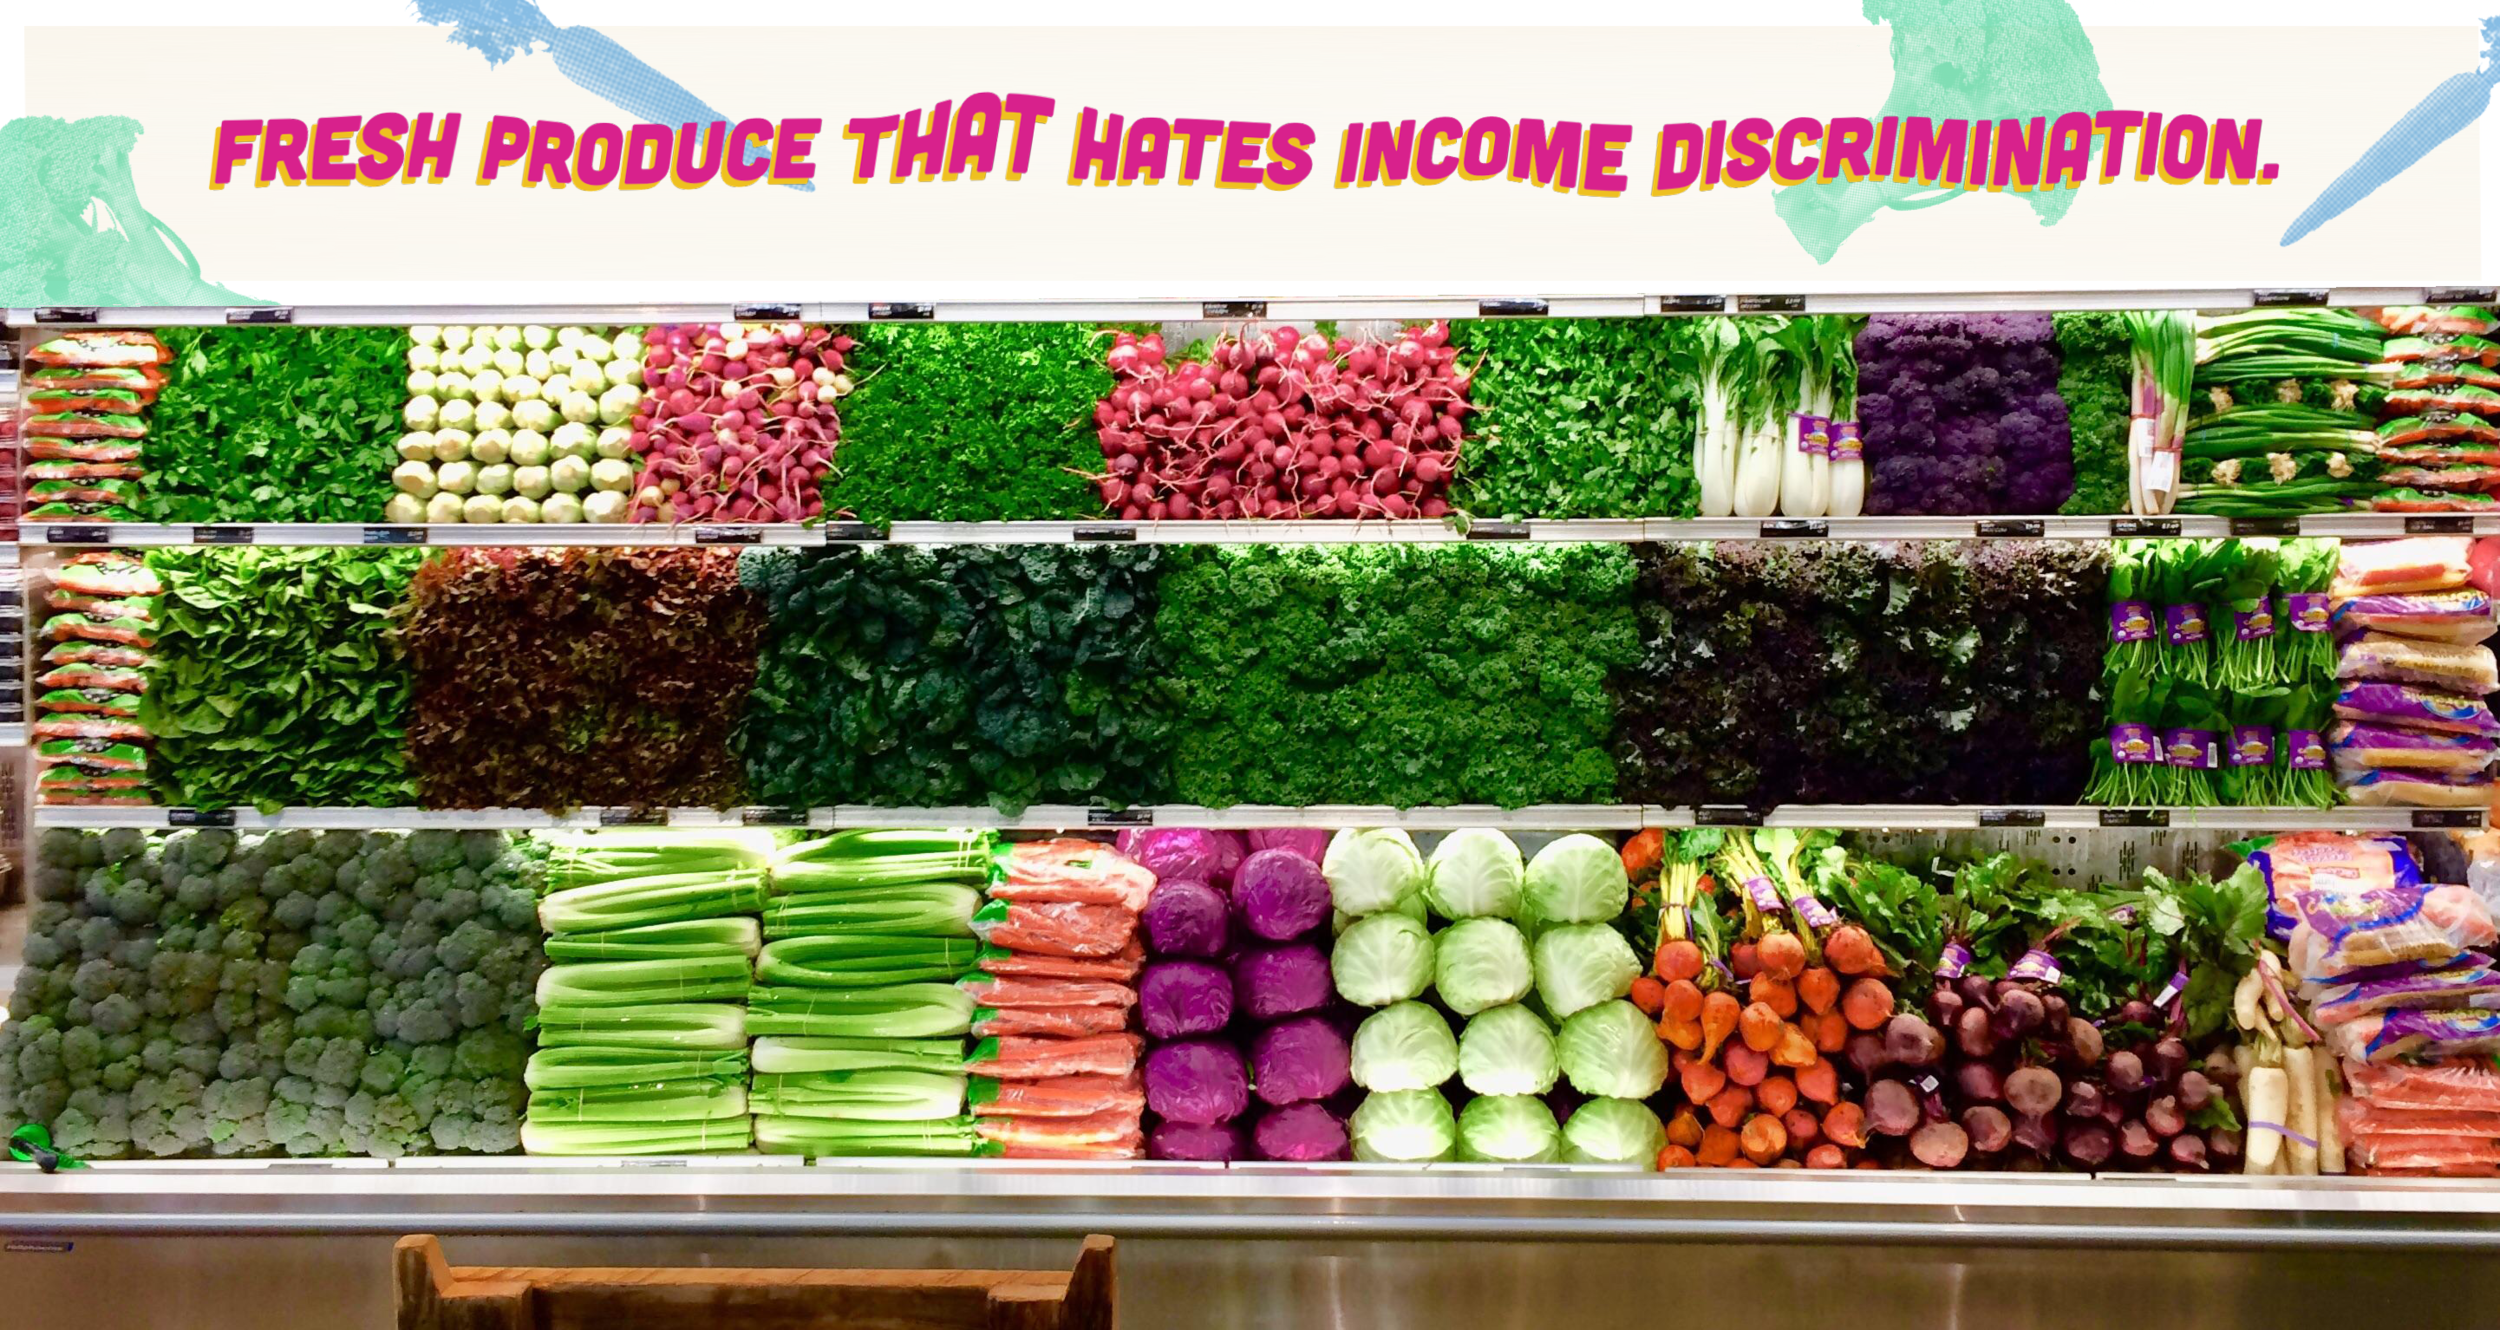 producesection.png